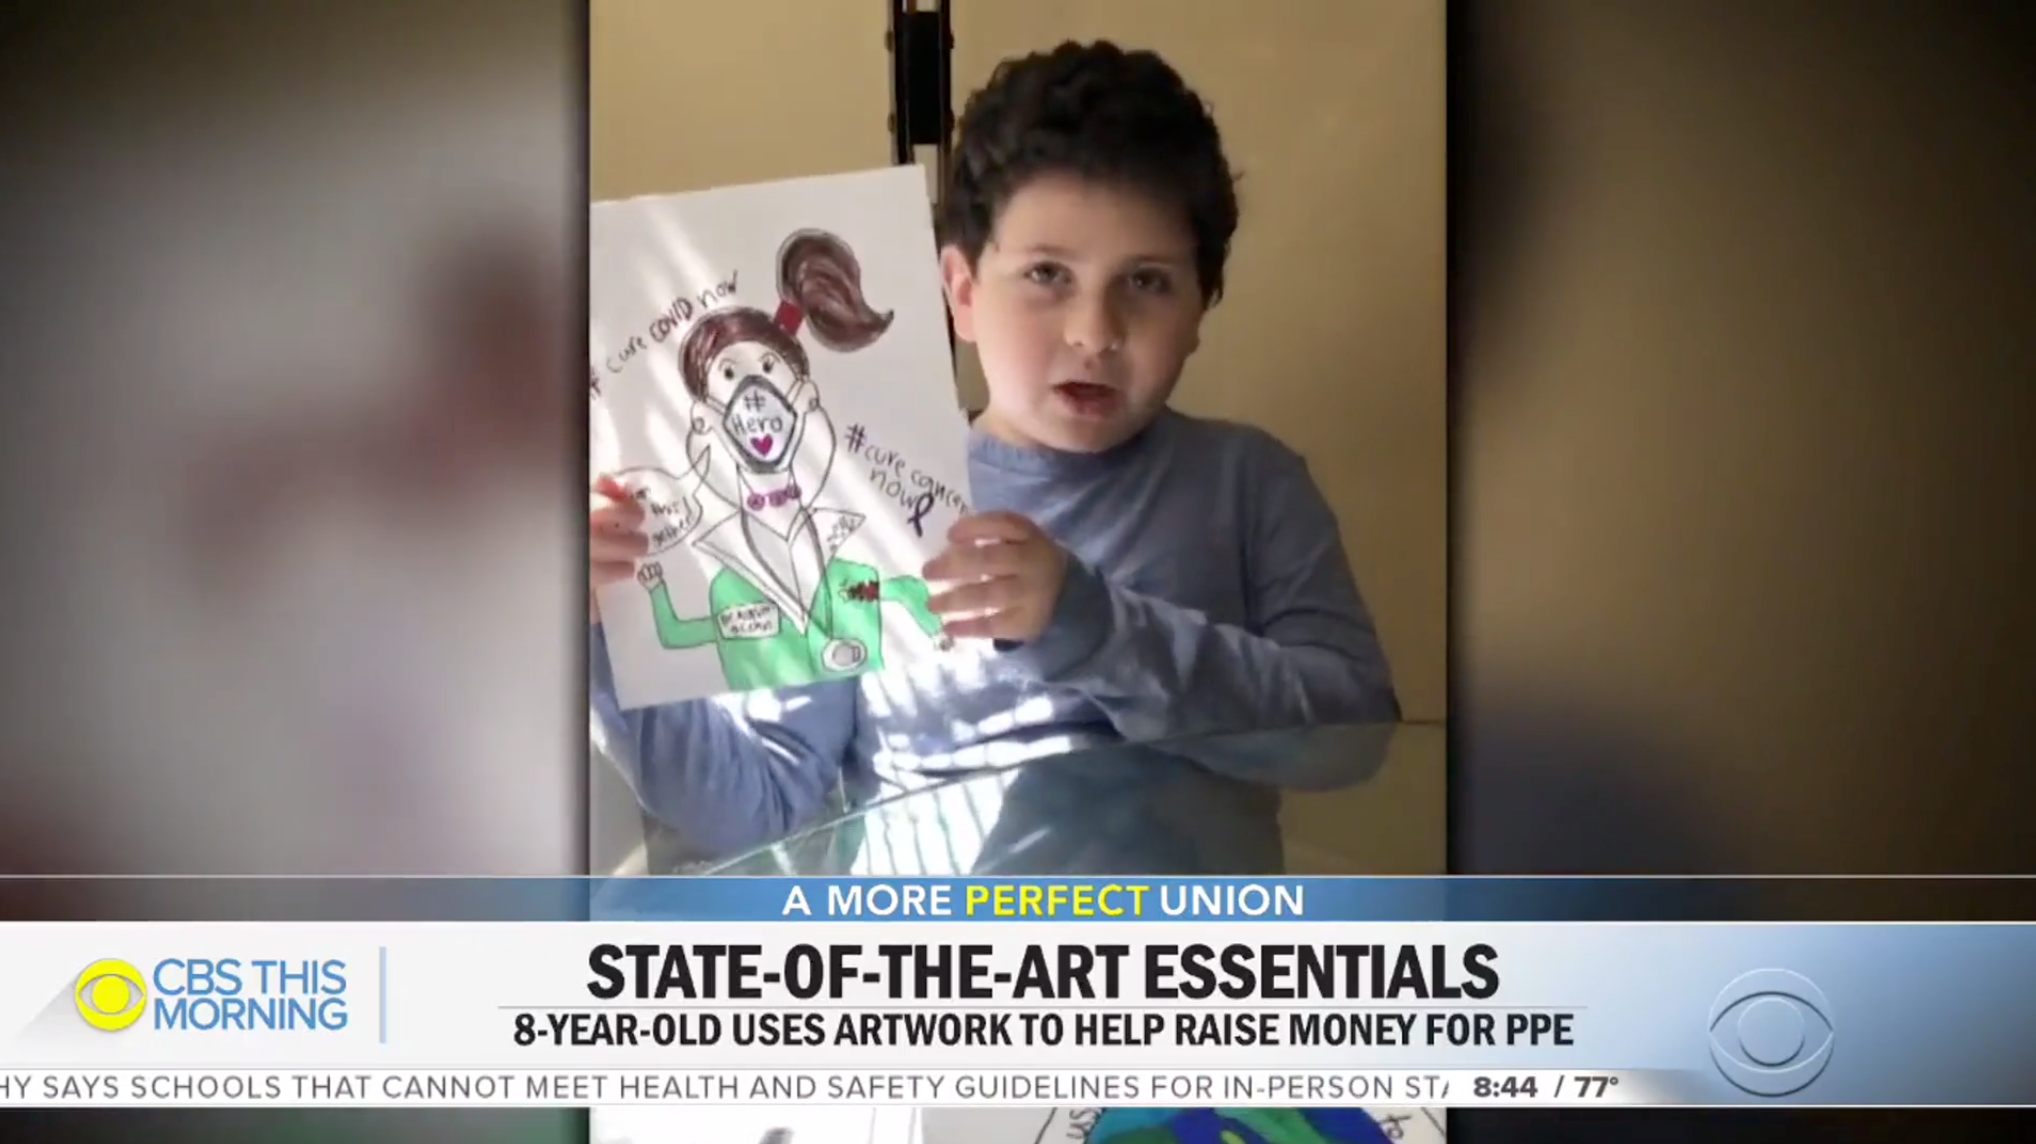 Eight-year-old youth artist Ethan Goldsmith shows a drawing he created to help raise money for Get Us PPE